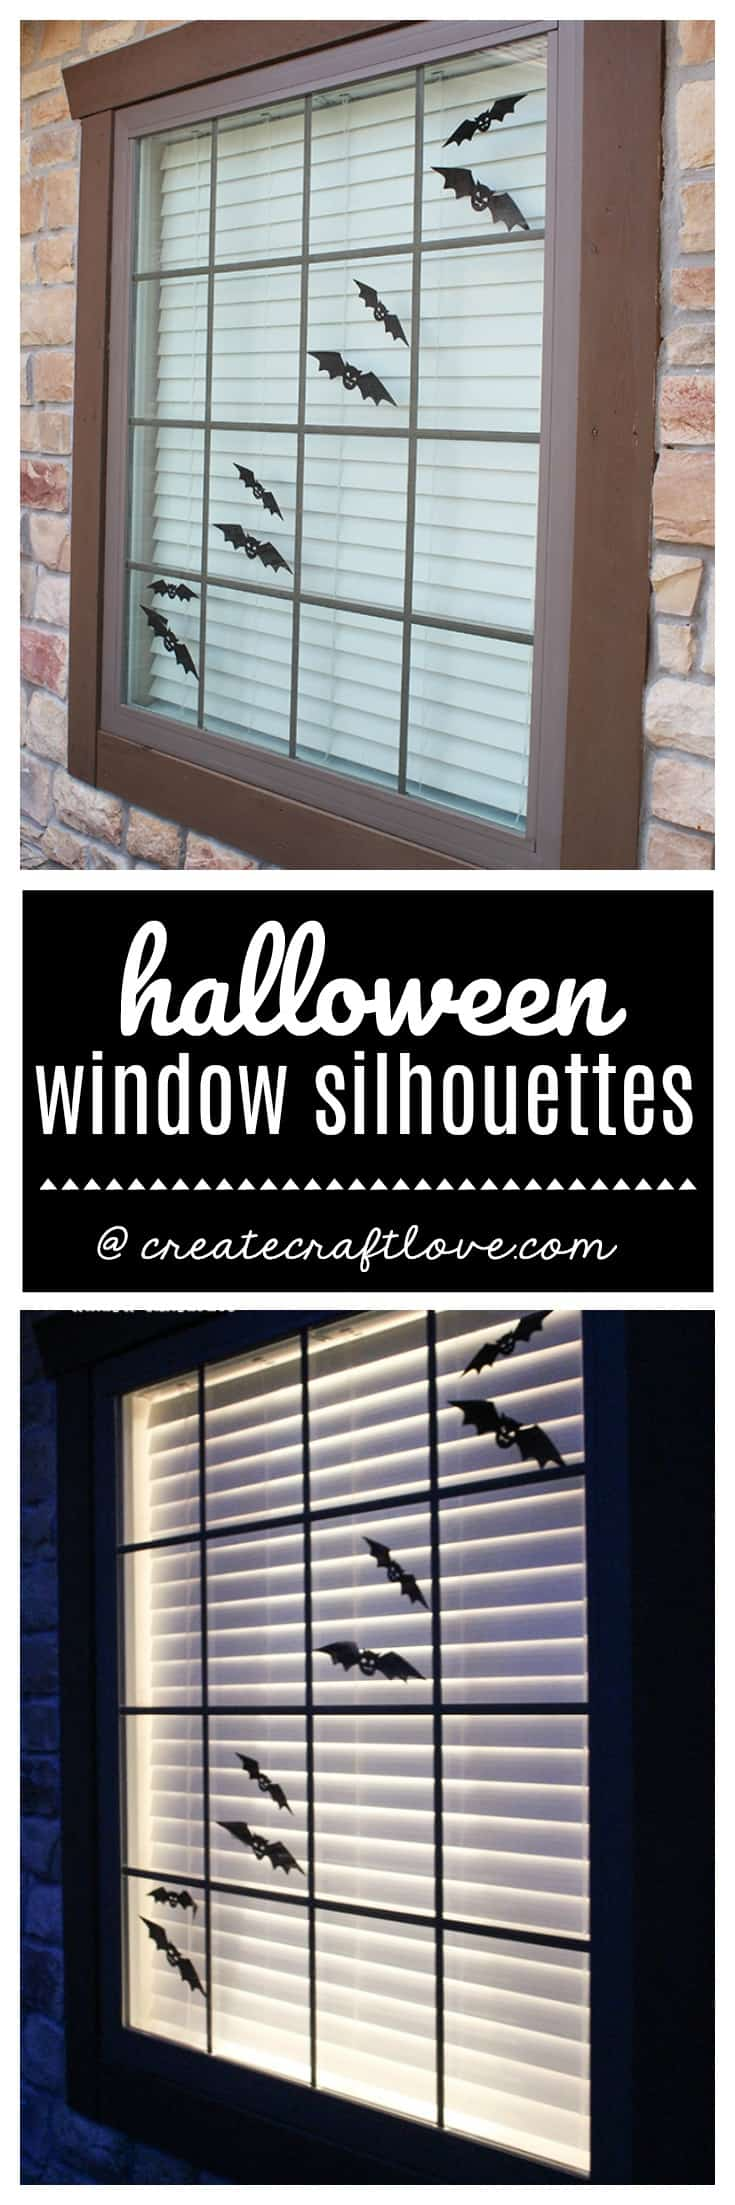 Create an outdoor Halloween scene with these window silhouettes!